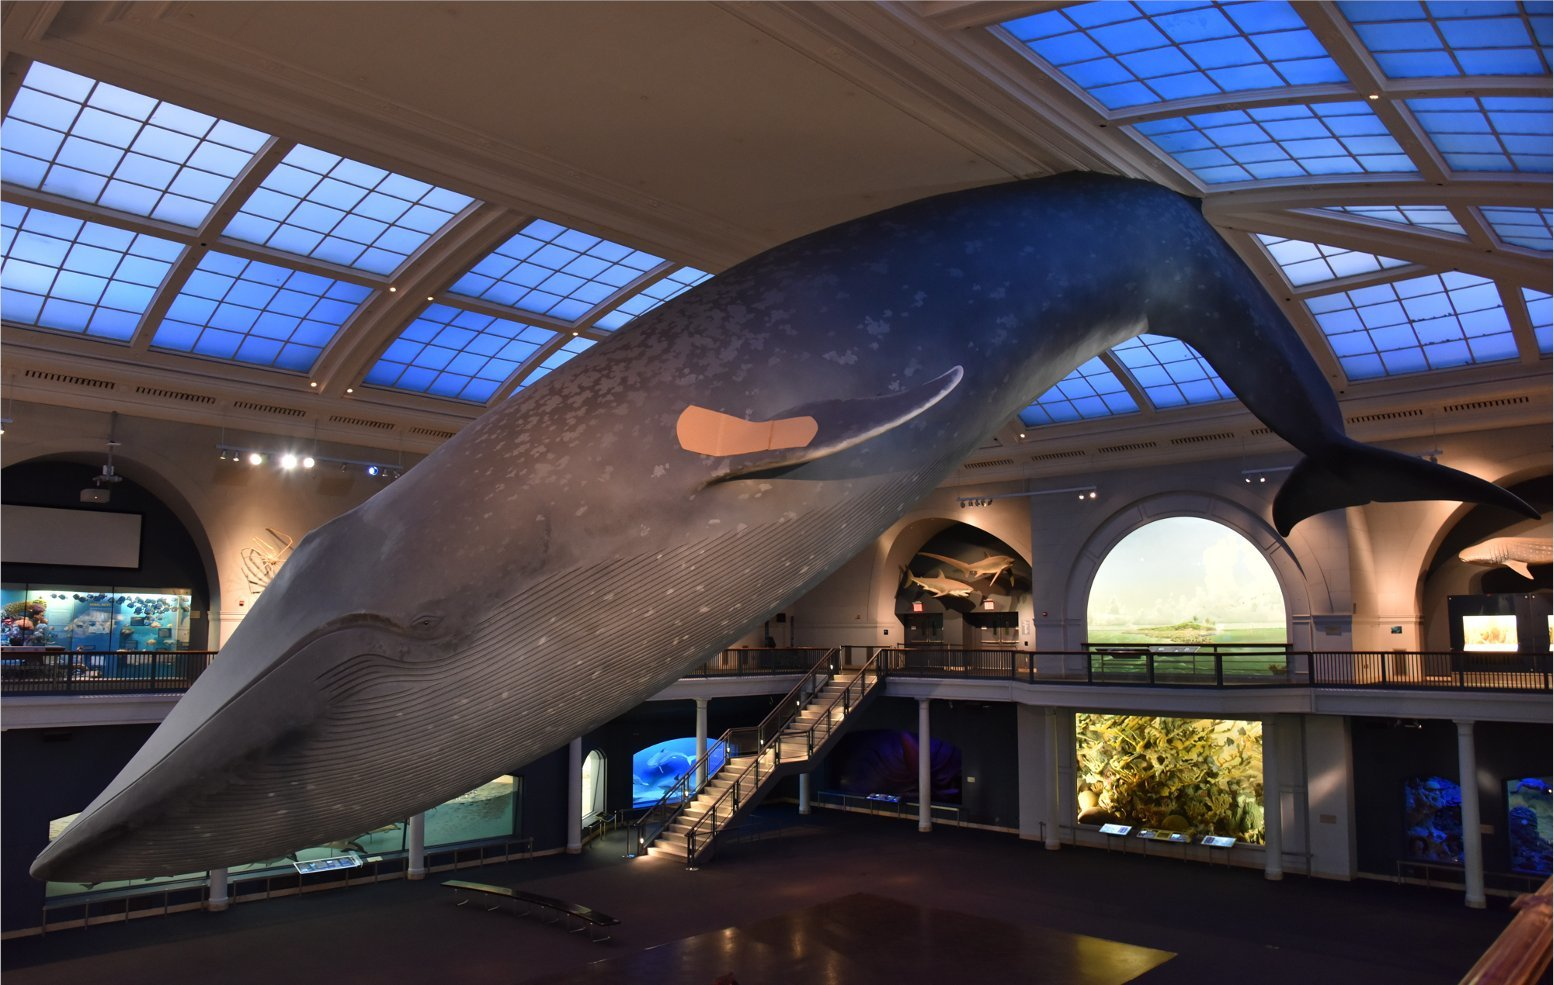 You can now get vaccinated under the giant blue whale at the American Museum of Natural History